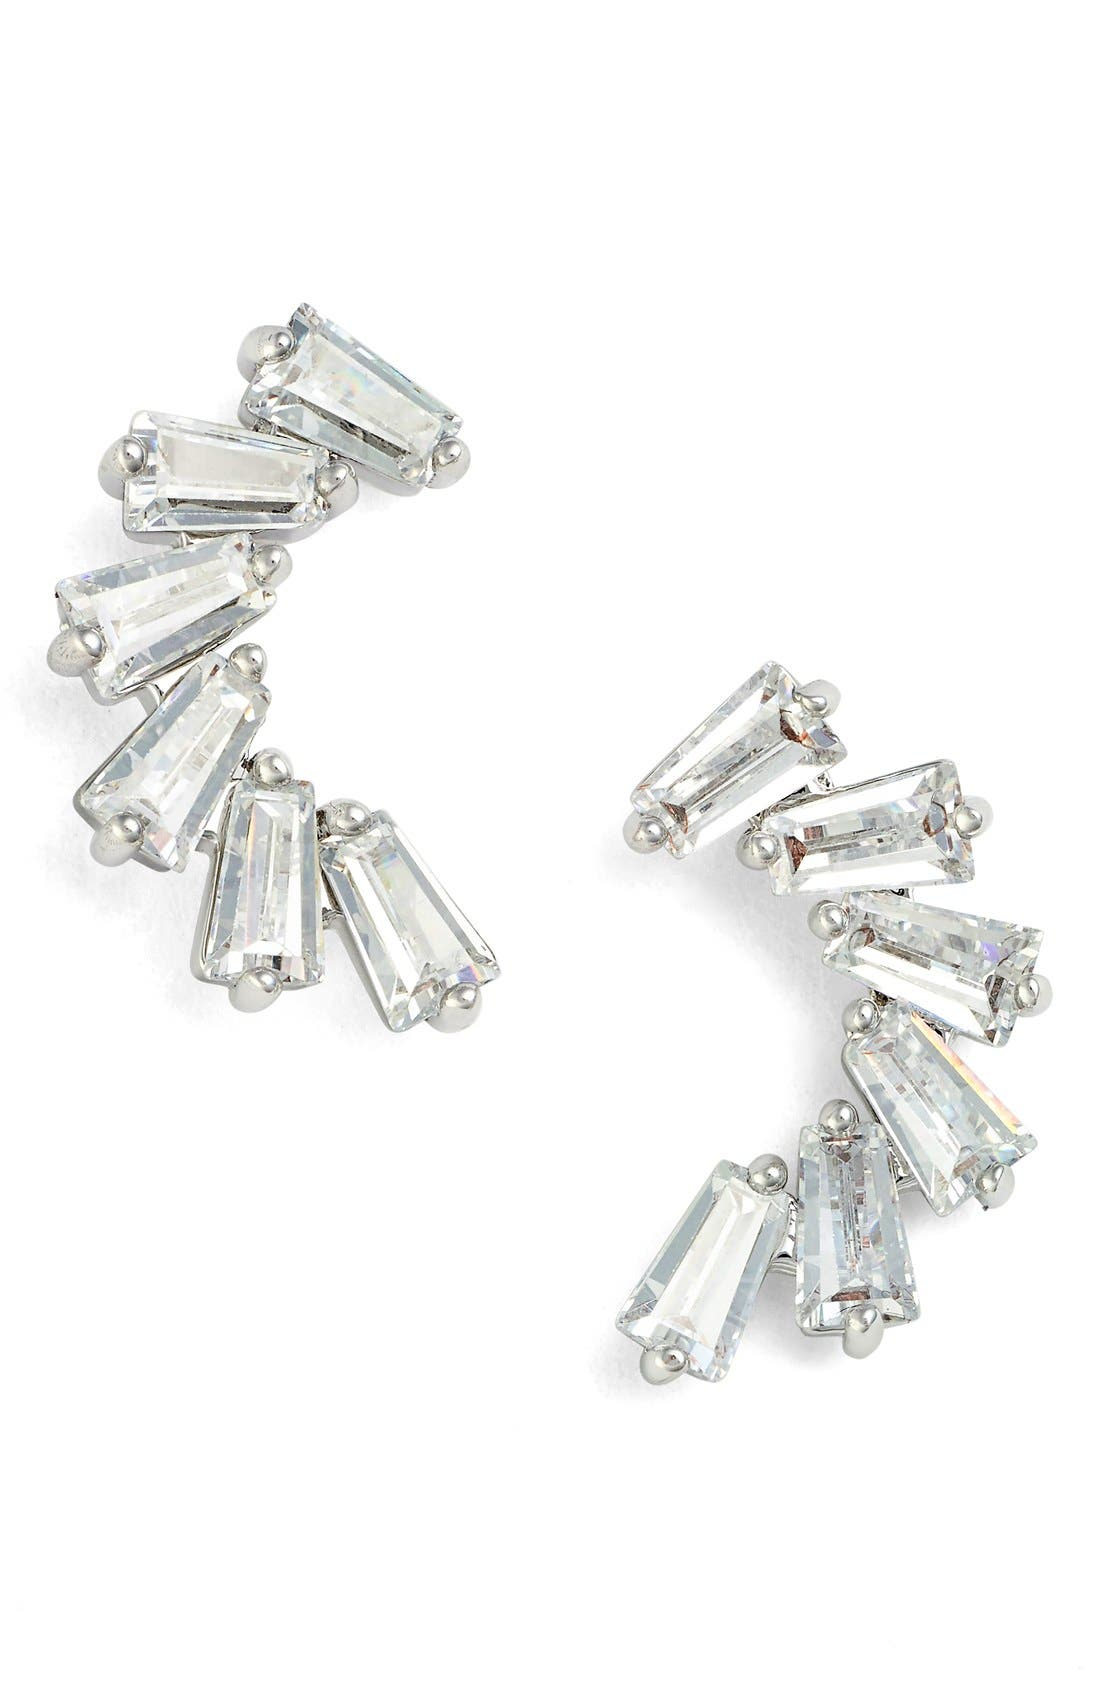 CZ by Kenneth Jay Lane Curved Baguette Cubic Zirconia Stud Earrings